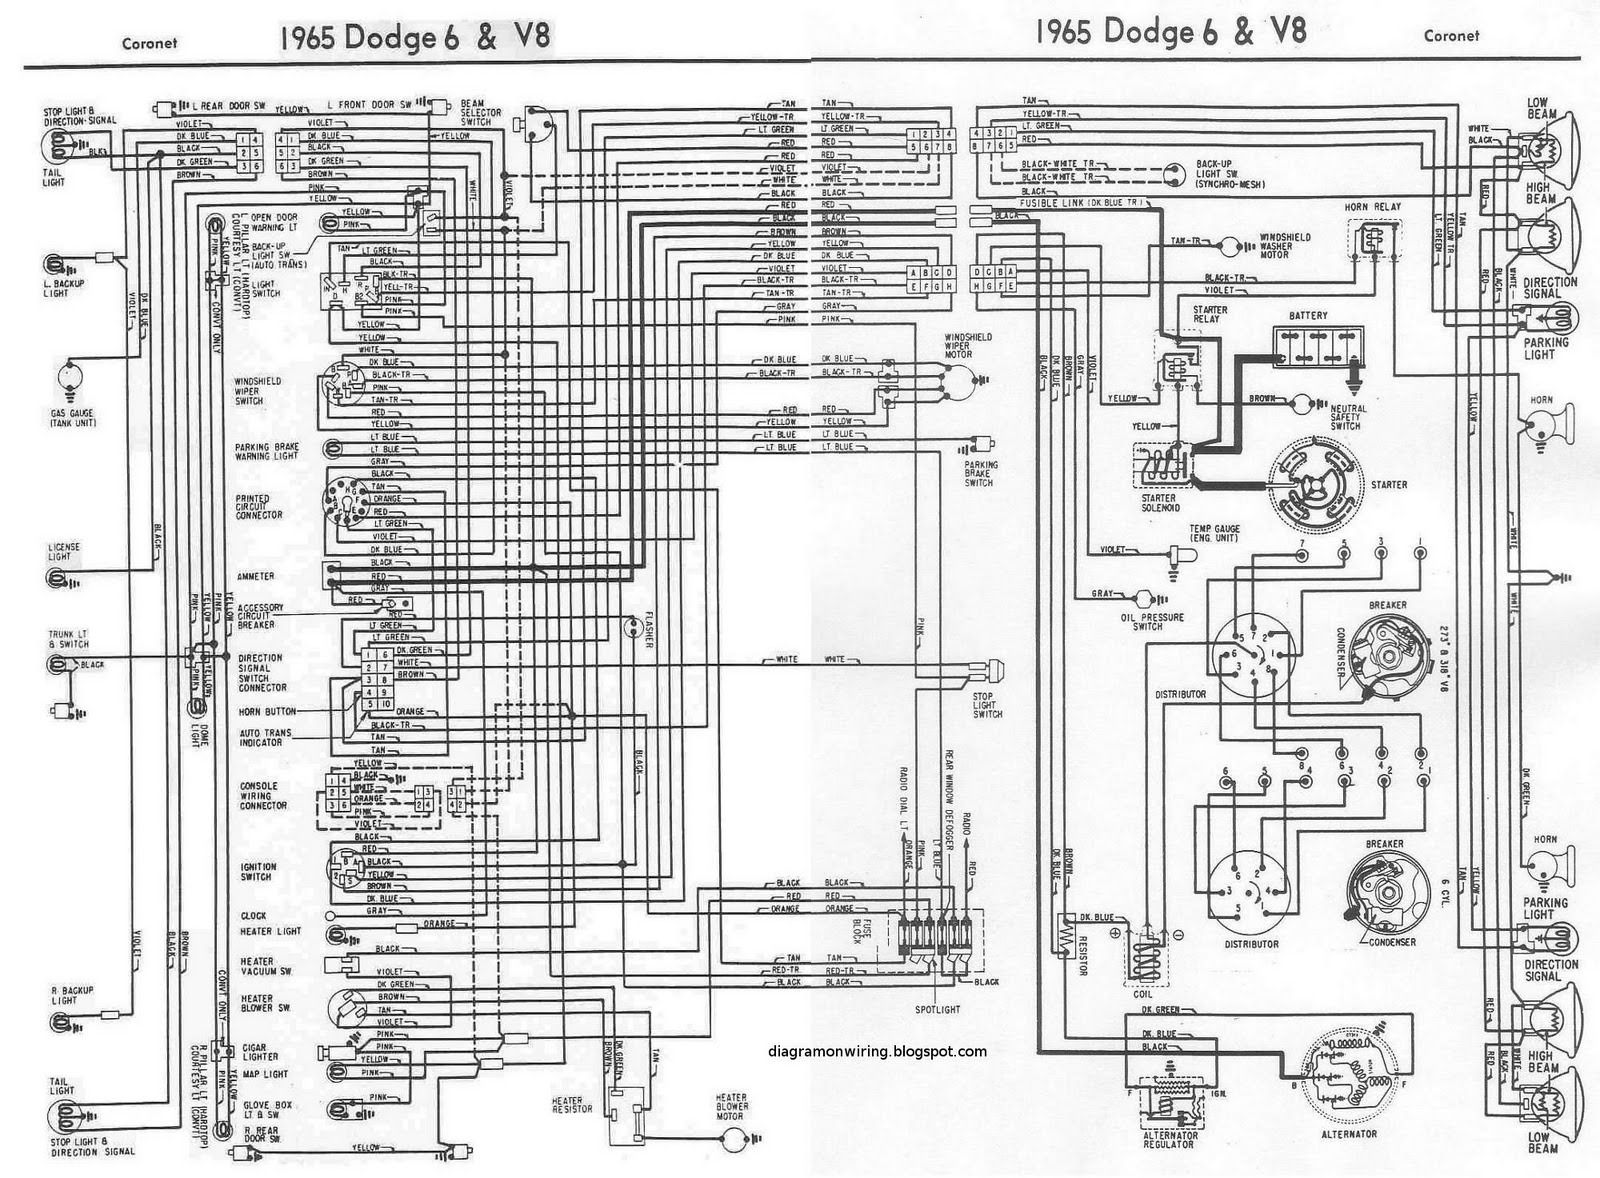 Dodge Wiring Diagrams Diagram For Two Dual 4 Ohm Subs To Mono 1 6 And V8 Coronet 1965 Complete All